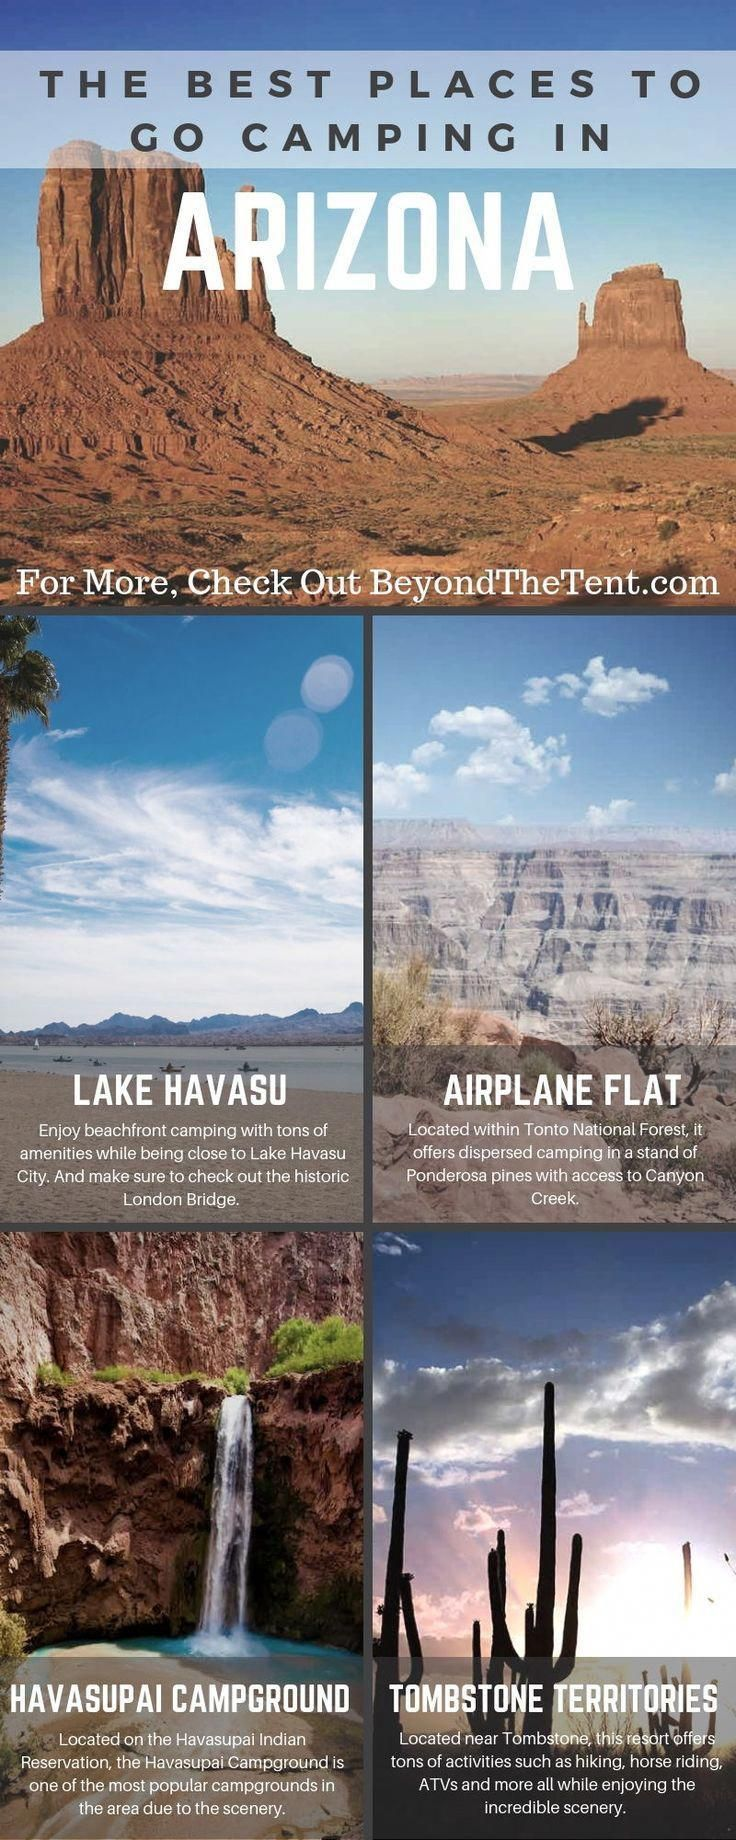 has so many tent and RV camping options but which one is right for your next vacation. Here is a list of the best camping spots in the state.Arizona has so many tent and RV camping options but which one is right for your next vacation. Here is a list of the best camping spots in the state.